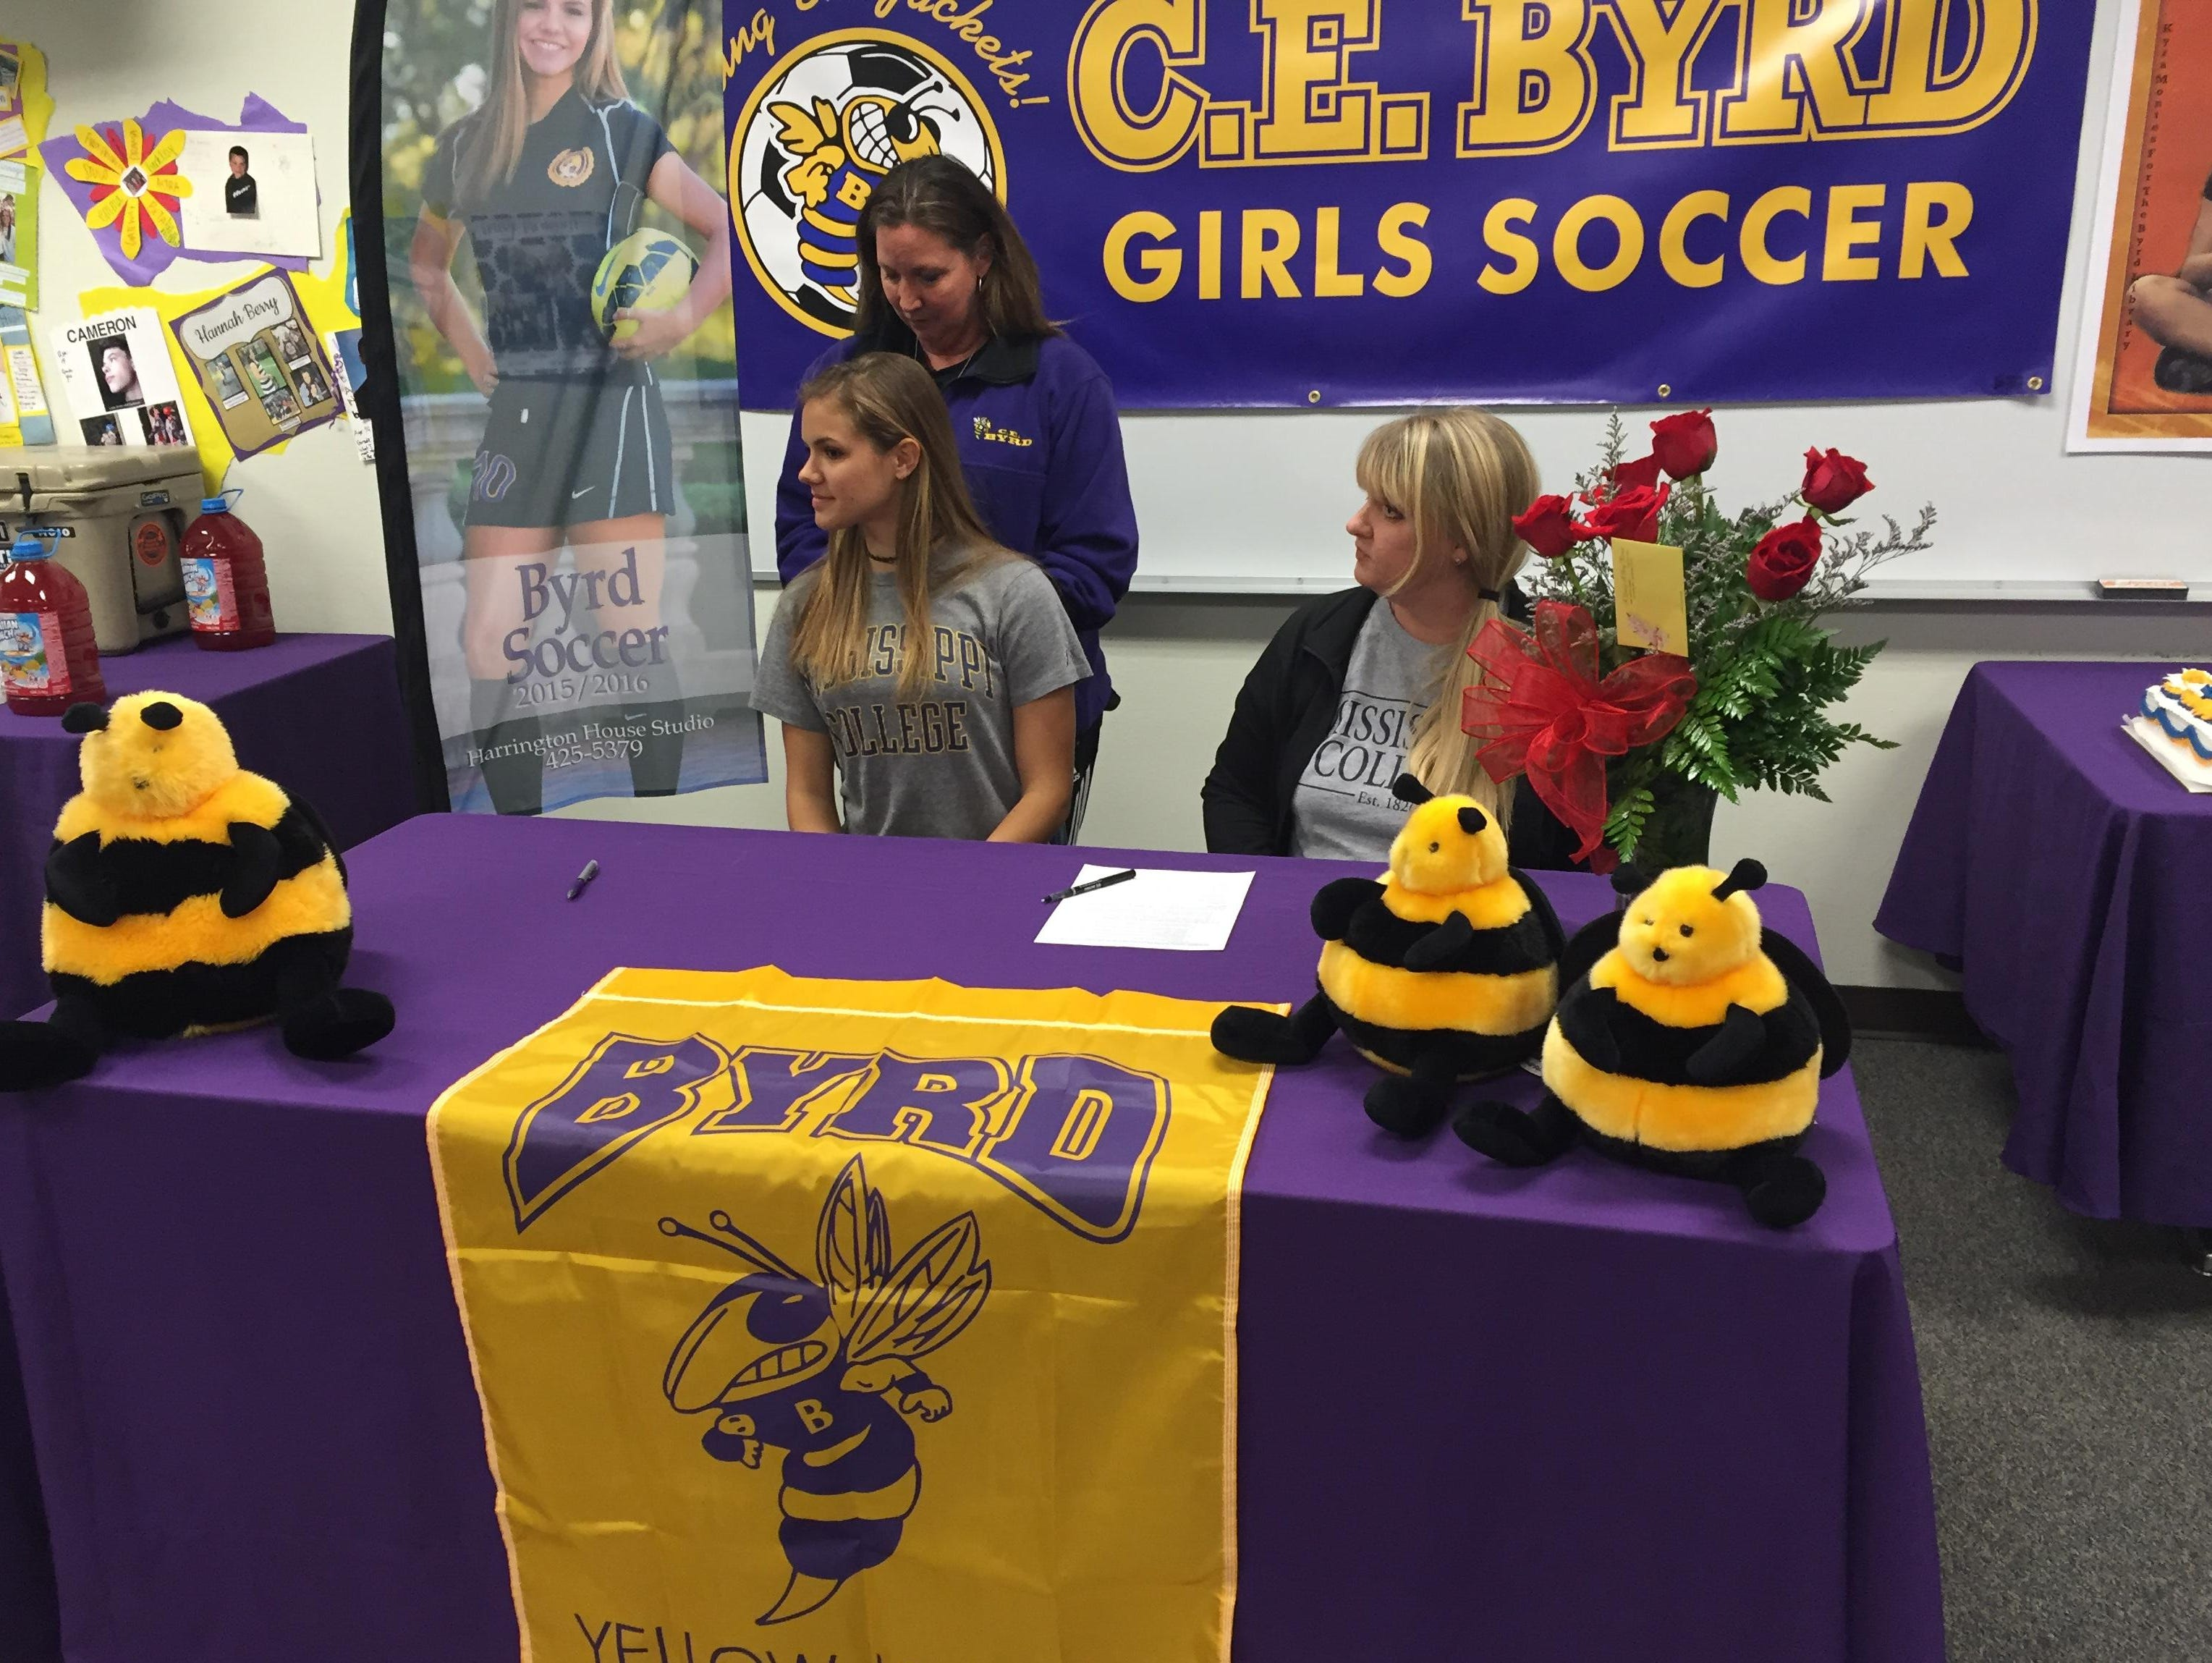 Wednesday, Byrd senior Kyra Montes signed to play soccer at Mississippi College.